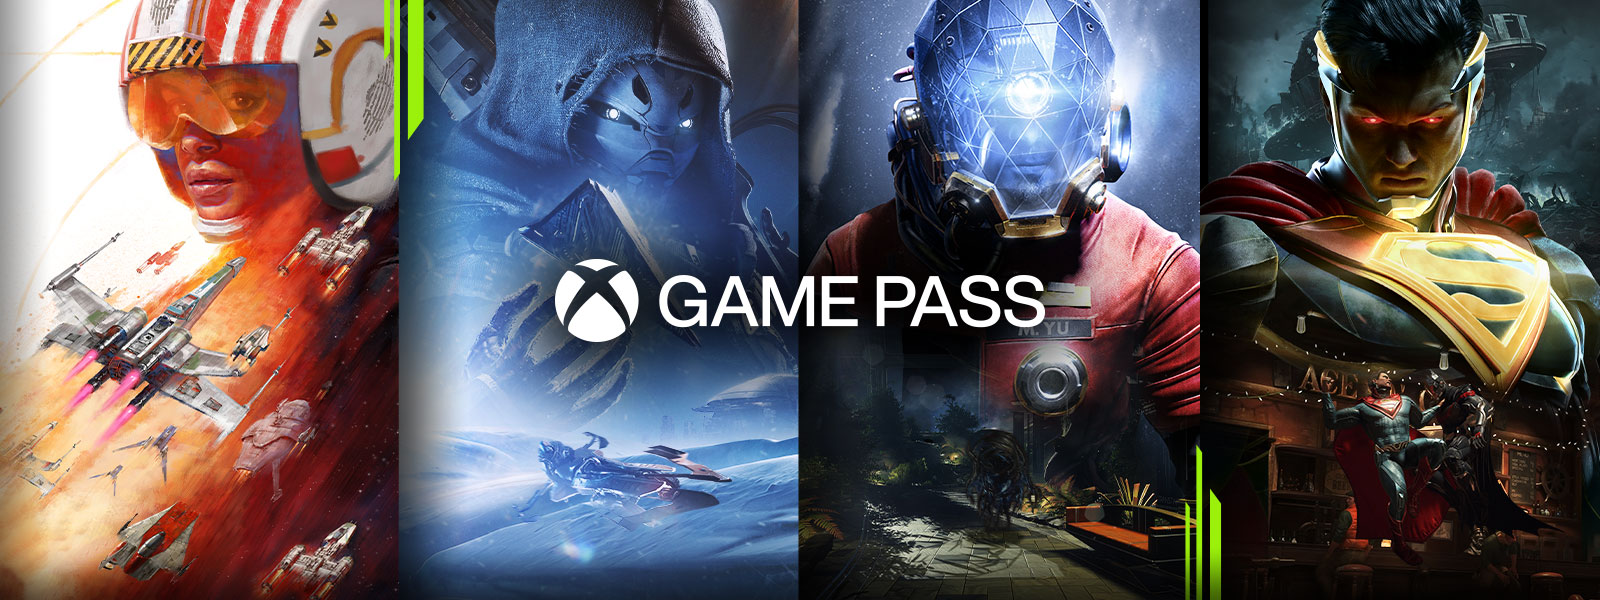 Xbox Game Pass logo over characters from games that are available through Xbox Game Pass Ultimate